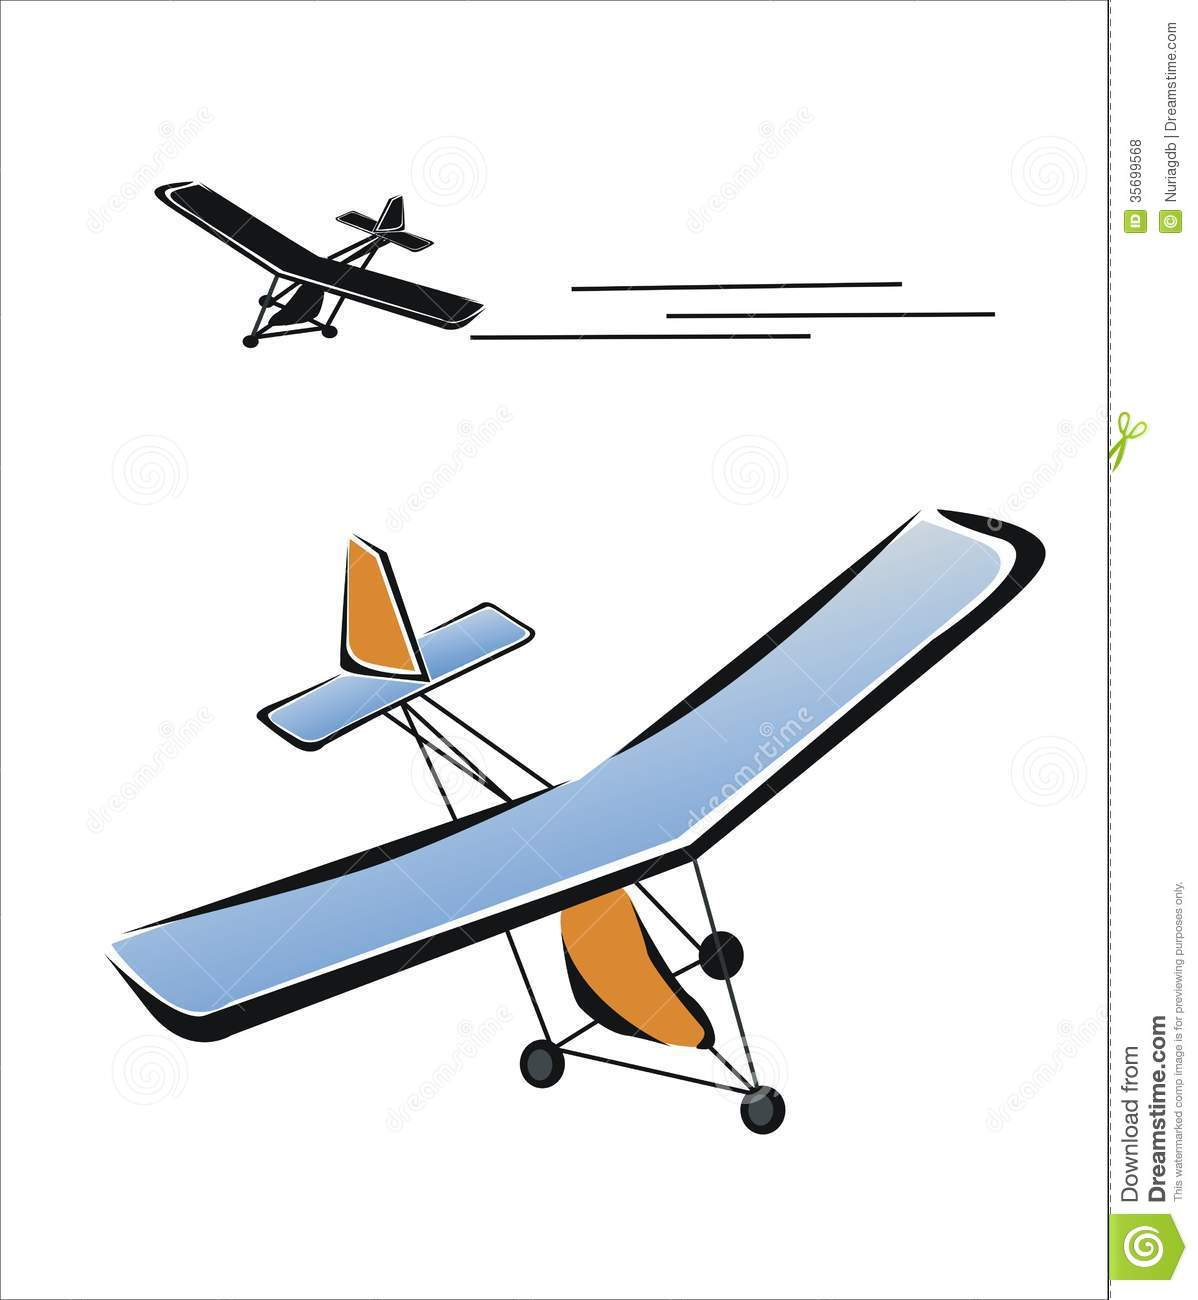 frontal plane in drawing with Royalty Free Stock Photos Airplane Drawing Microlight Flying Image35699568 on Dibujo Para Colorear Avion 747 I7521 moreover ment Page 1 moreover Departamentos 2 Dormitorios likewise Stock Illustration Human Brain Anatomy Sections Vector Illustration Image44353466 together with Royalty Free Stock Photos Airplane Drawing Microlight Flying Image35699568.